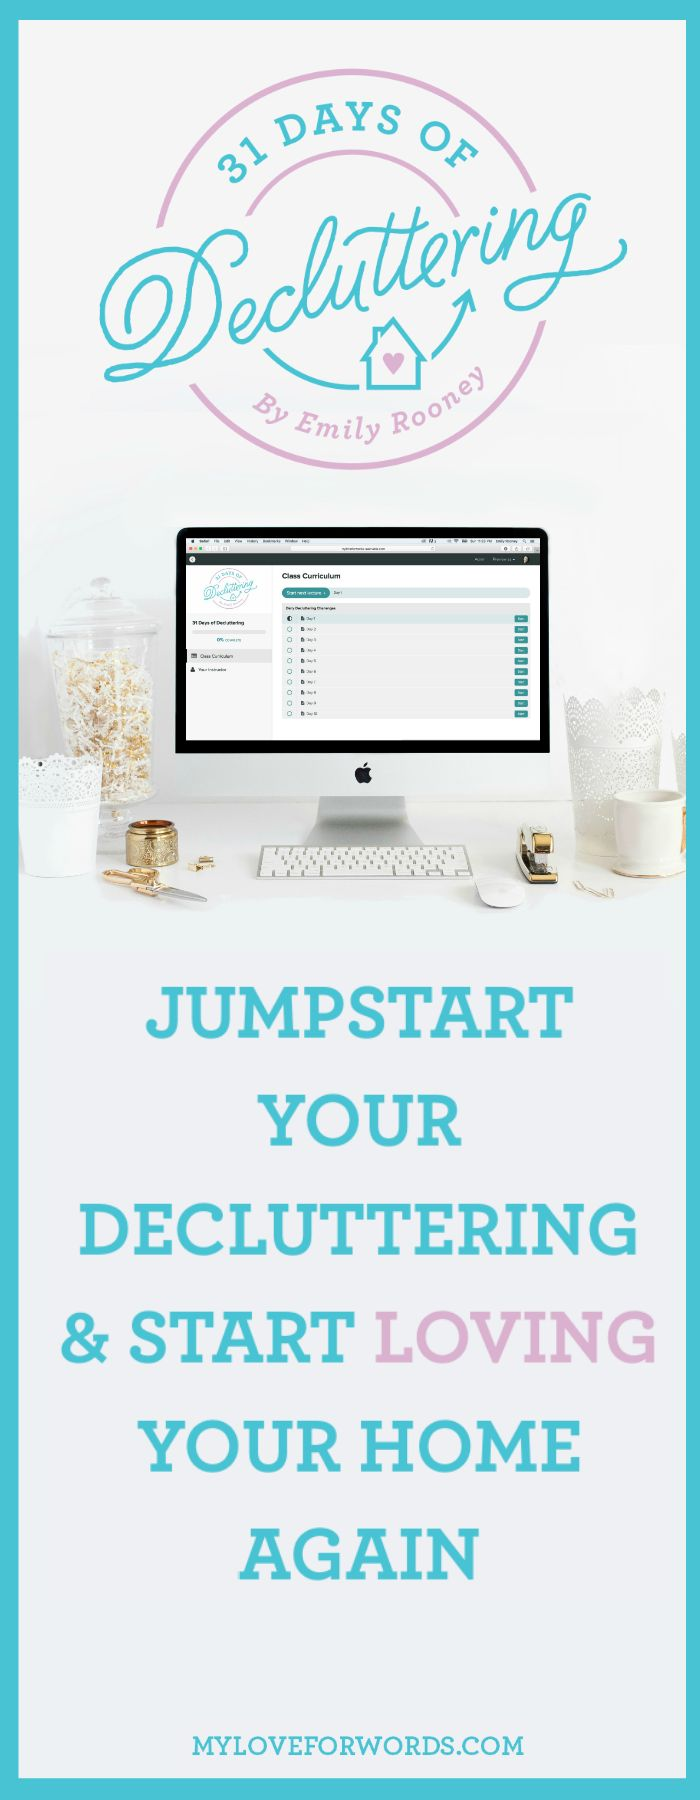 489 curated Declutter ideas by organizingmoms | Declutter your ...